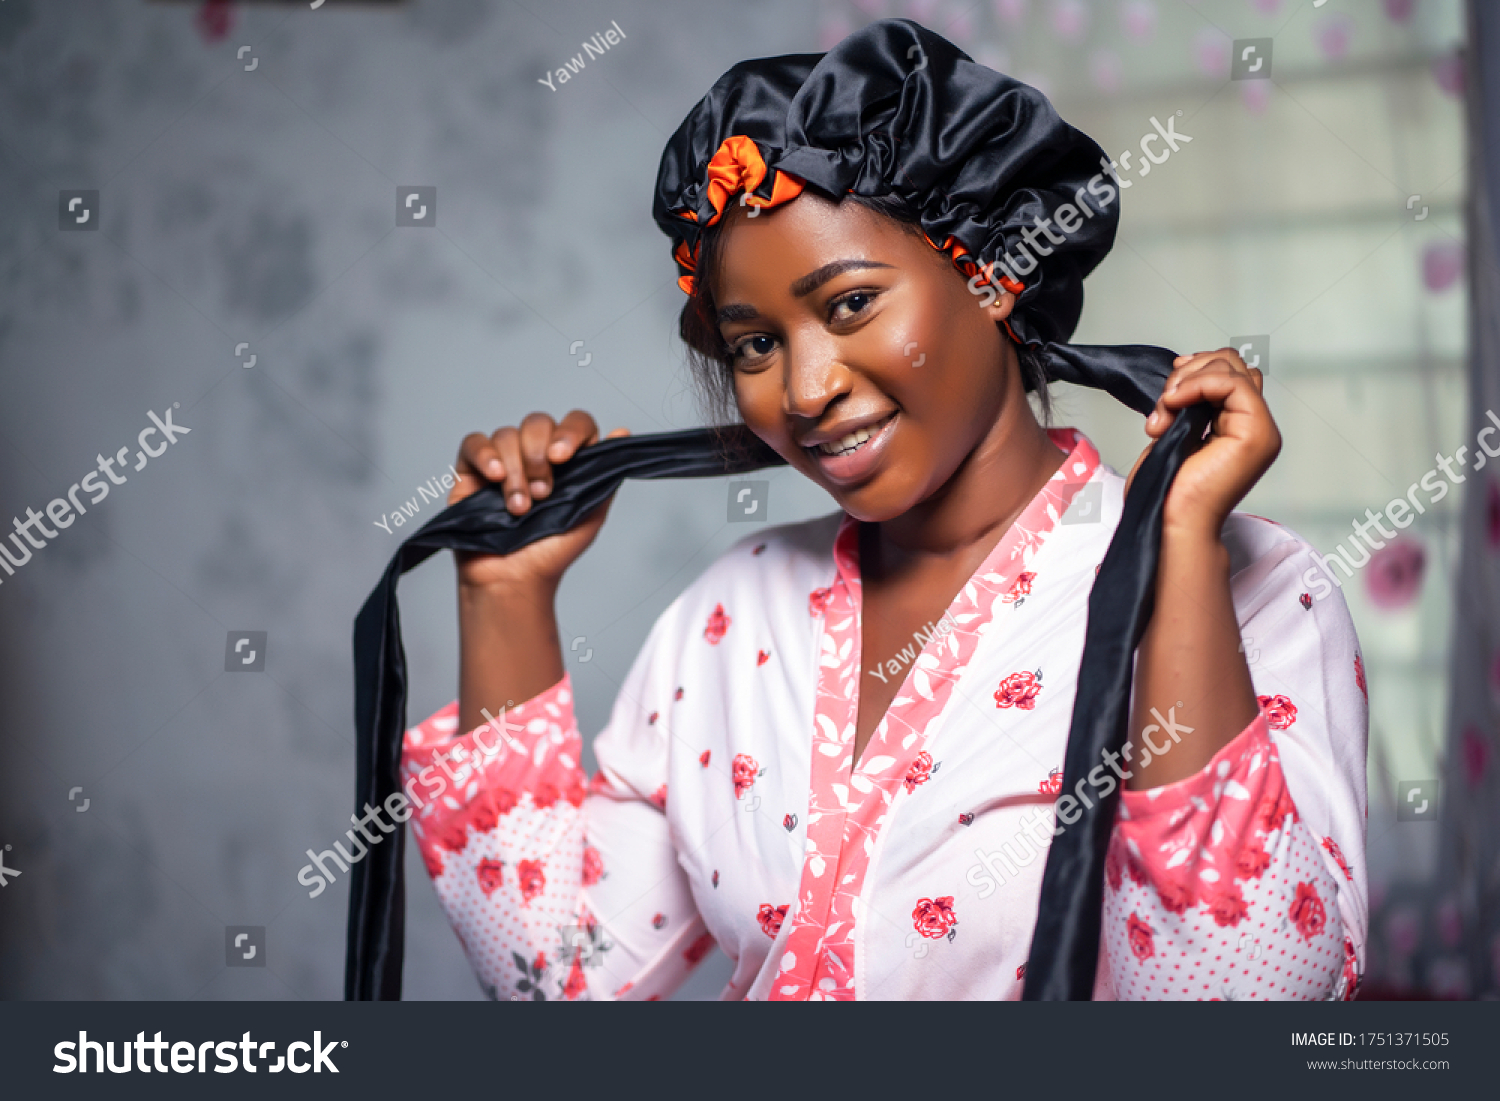 Elegant black lady looking at camera wearing a satin bonnet and floral robe, smiling in interior. Black female health and wellness indoors, skin perfection and care lifestyle. #1751371505